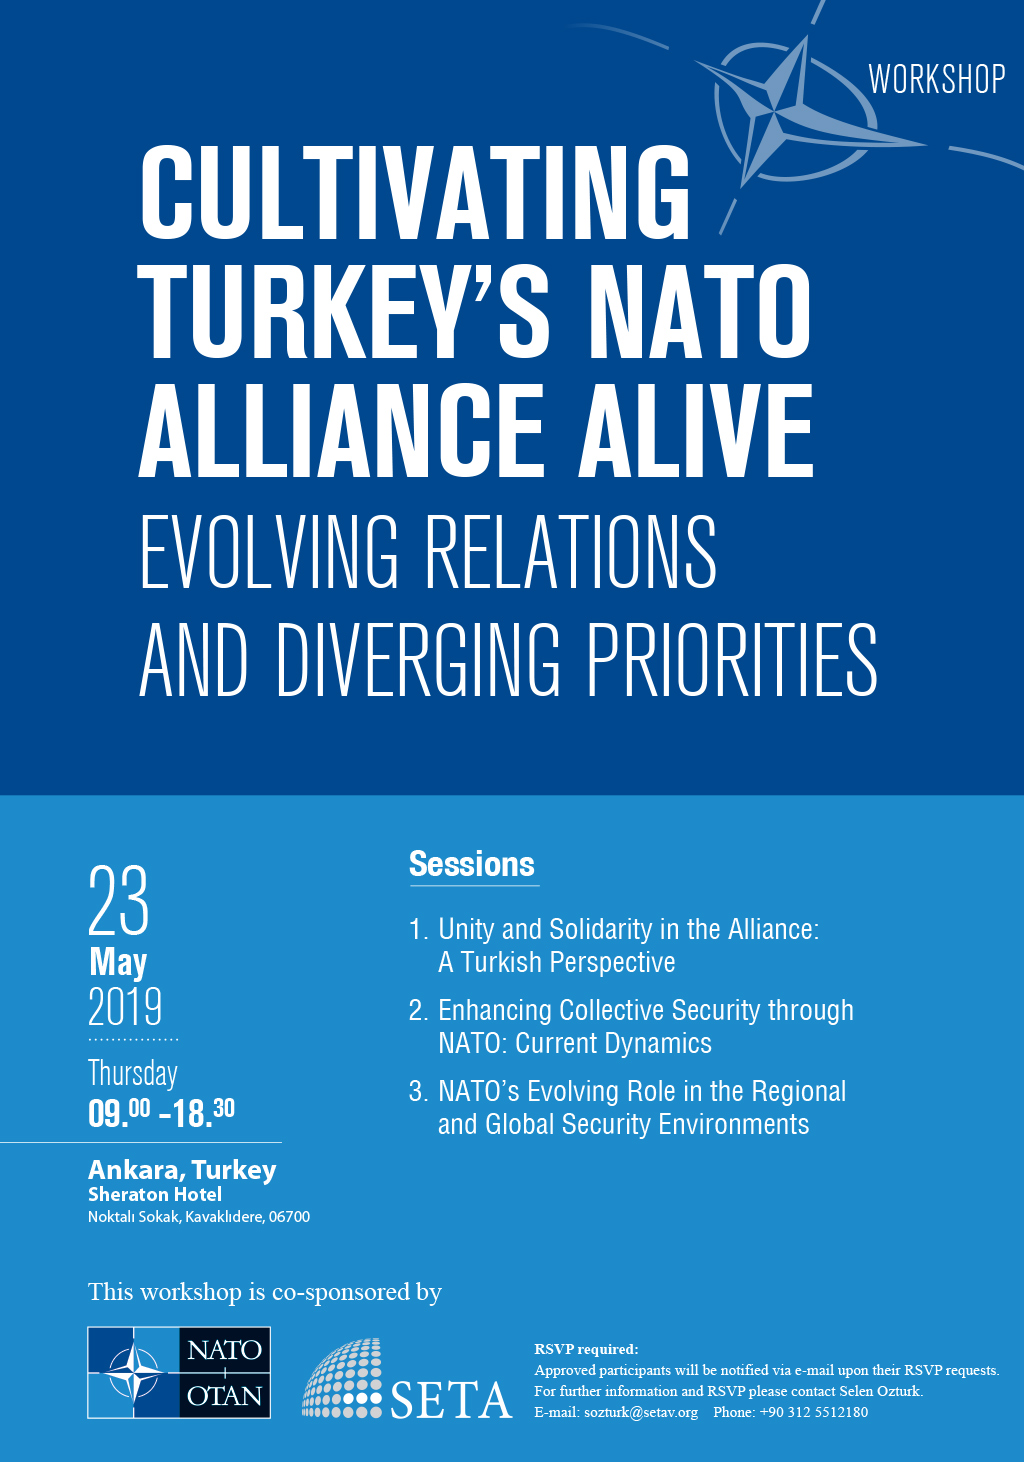 Cultivating Turkey's NATO Alliance Alive: Evolving Relations and Diverging Priorities Workshop